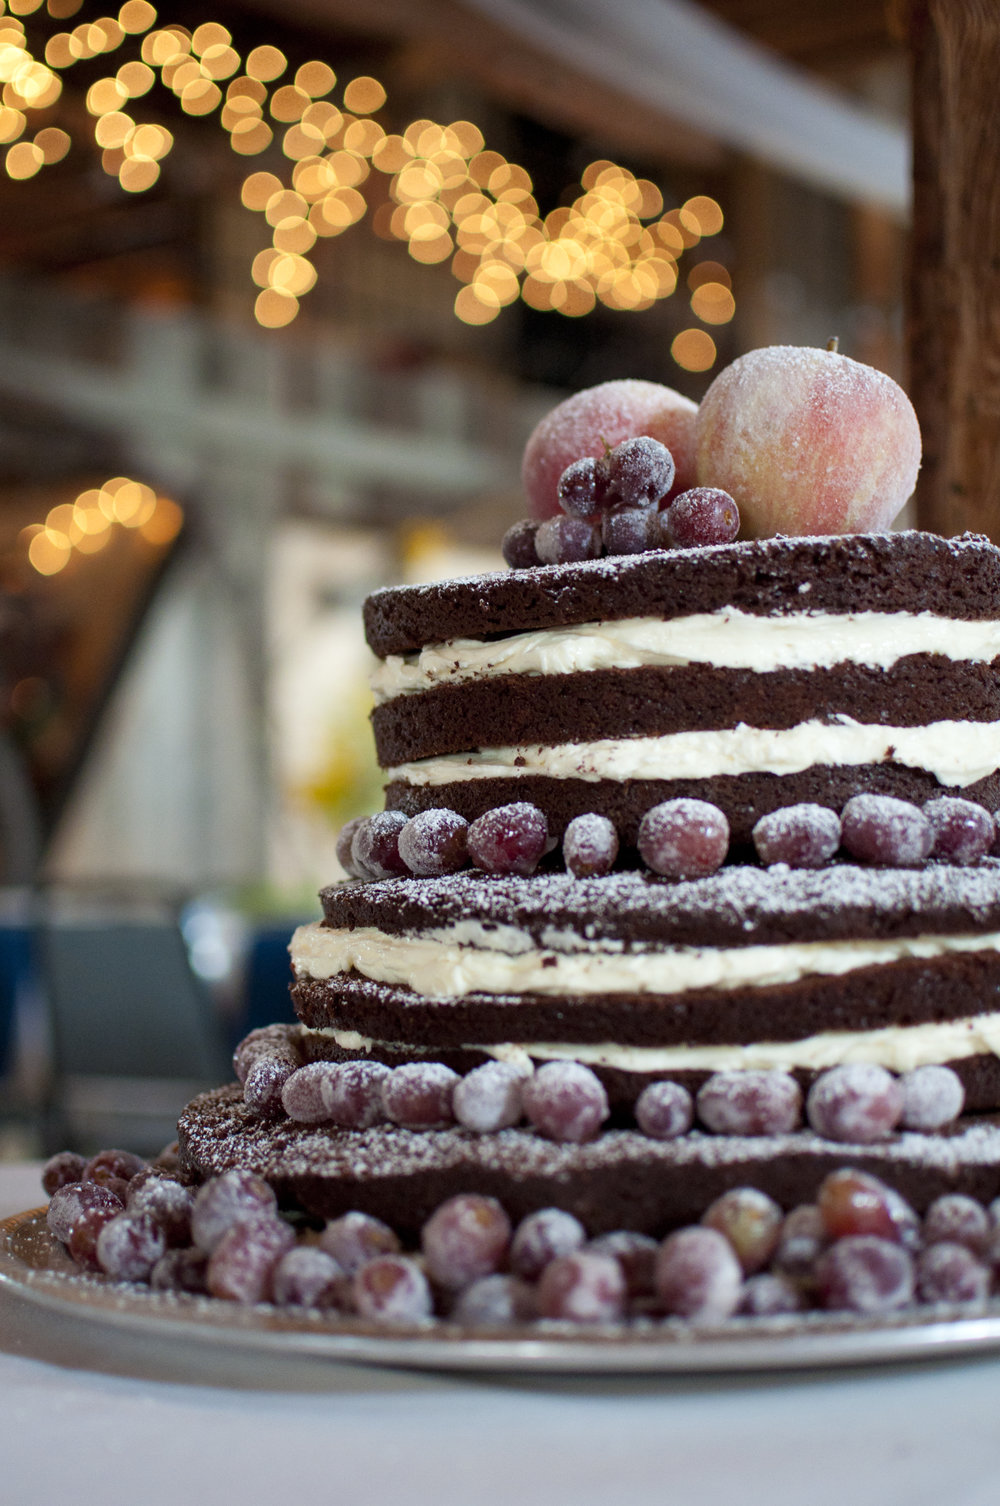 Naked cake with whipped cream filling with sugared fruits on top